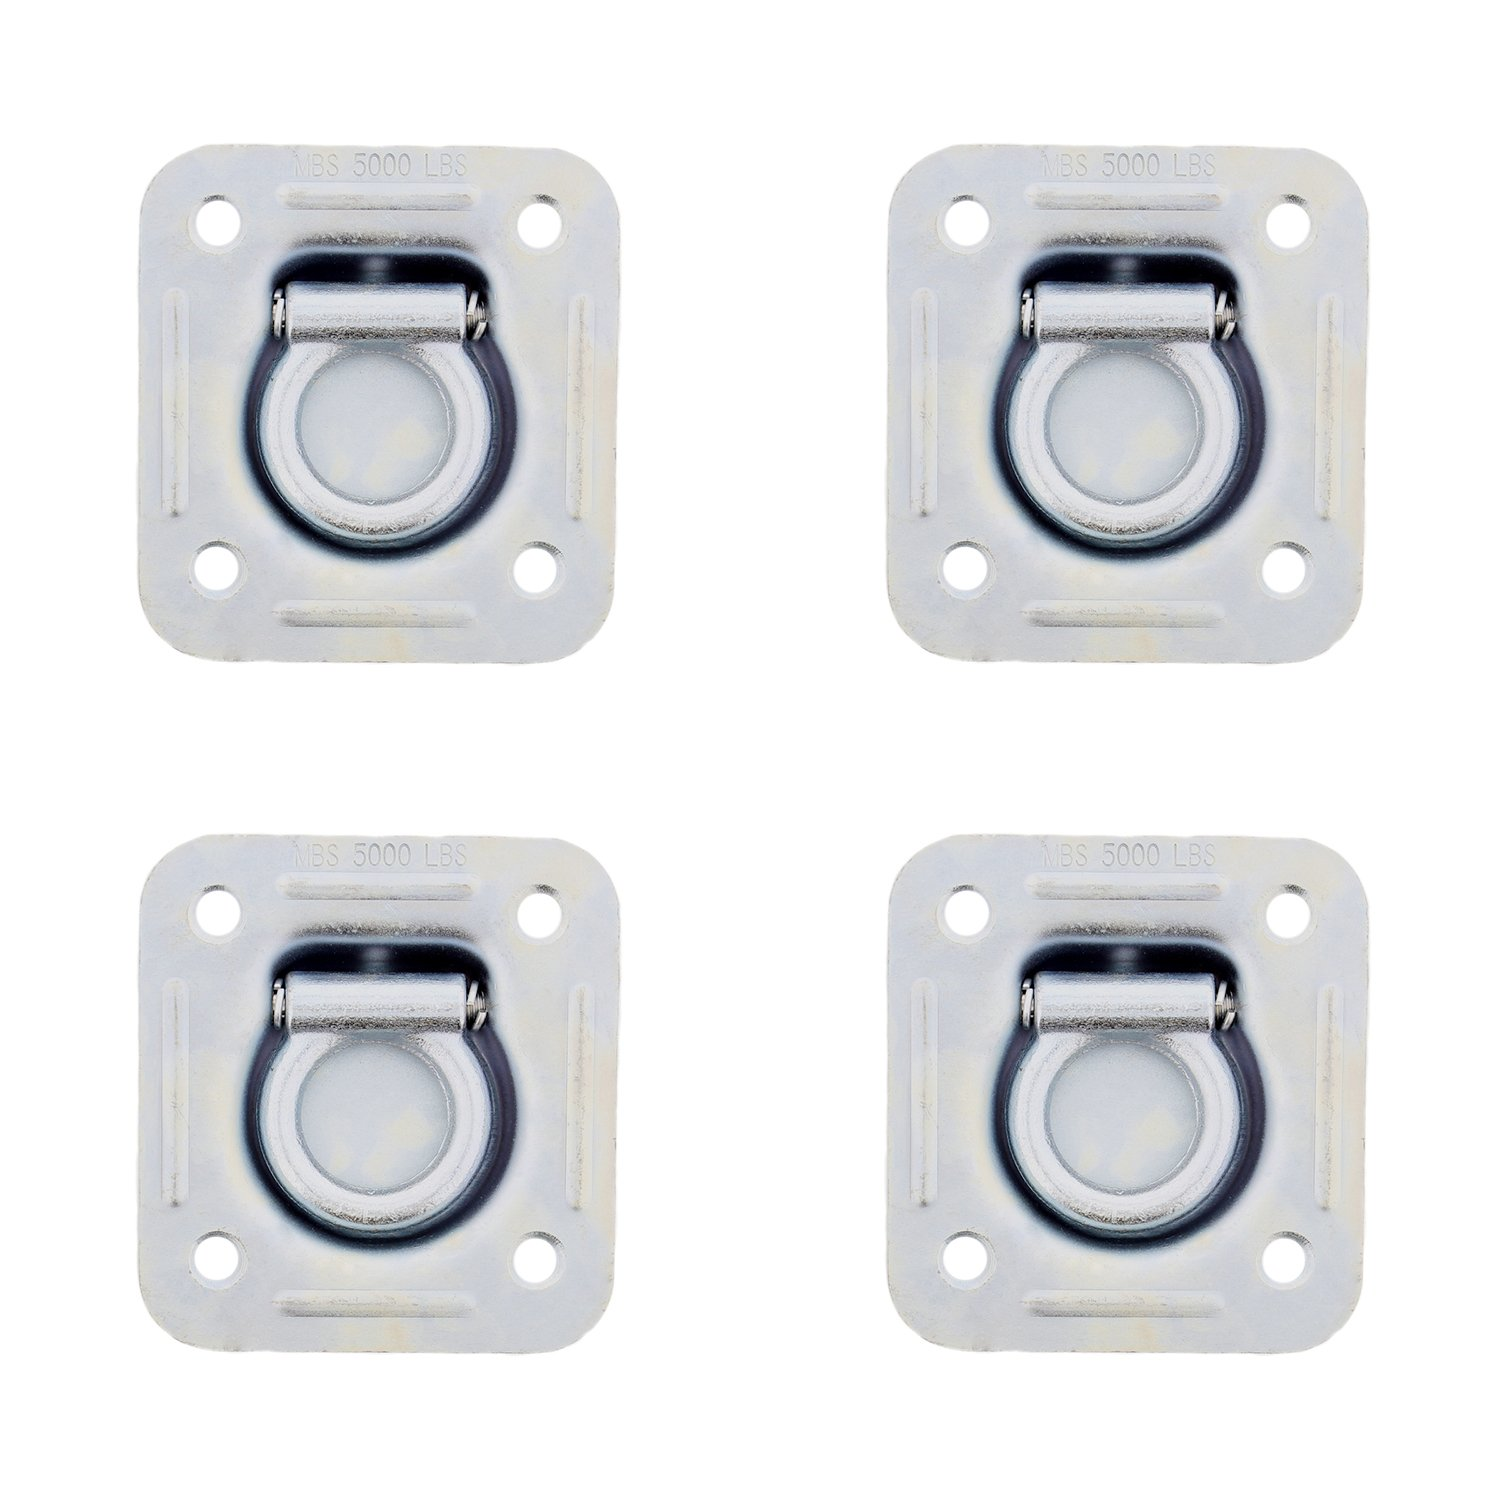 PeakTow PTJ0321 Cargo Trailer Recessed 6000 Lbs Capacity Tie-Down Pan D Rings Including Mounting Lock Plate and Installation Hardware Pack of 4